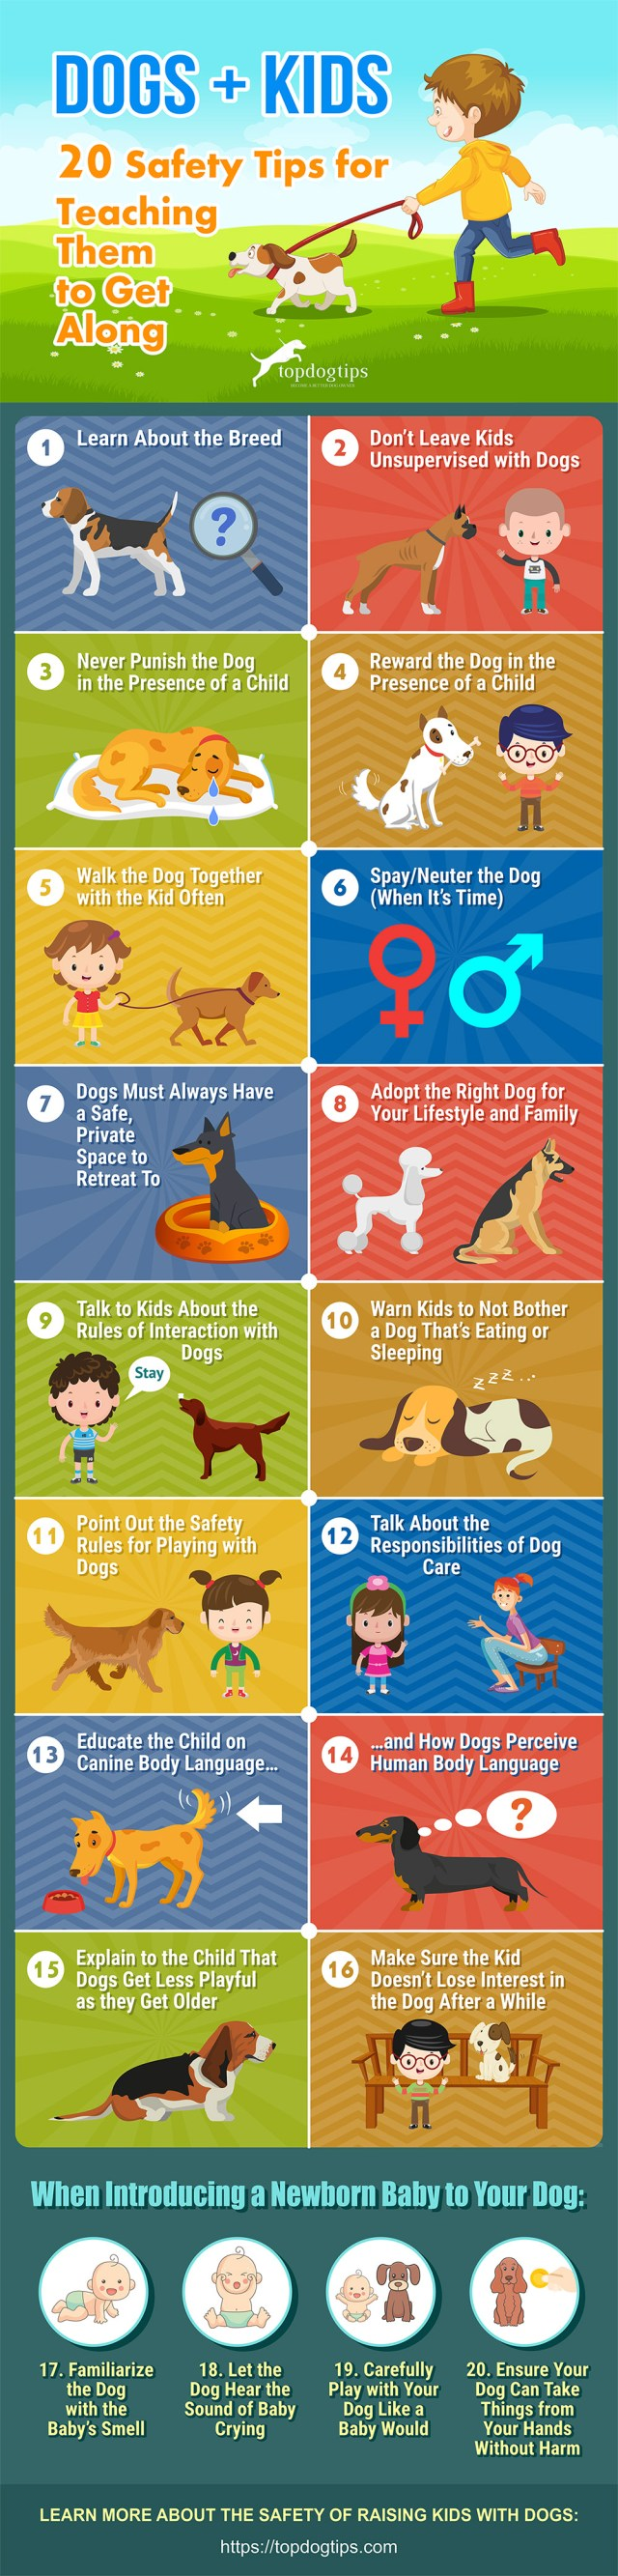 Infographic: 20 Safety Tips for Teaching Kids and Dogs to Get Along